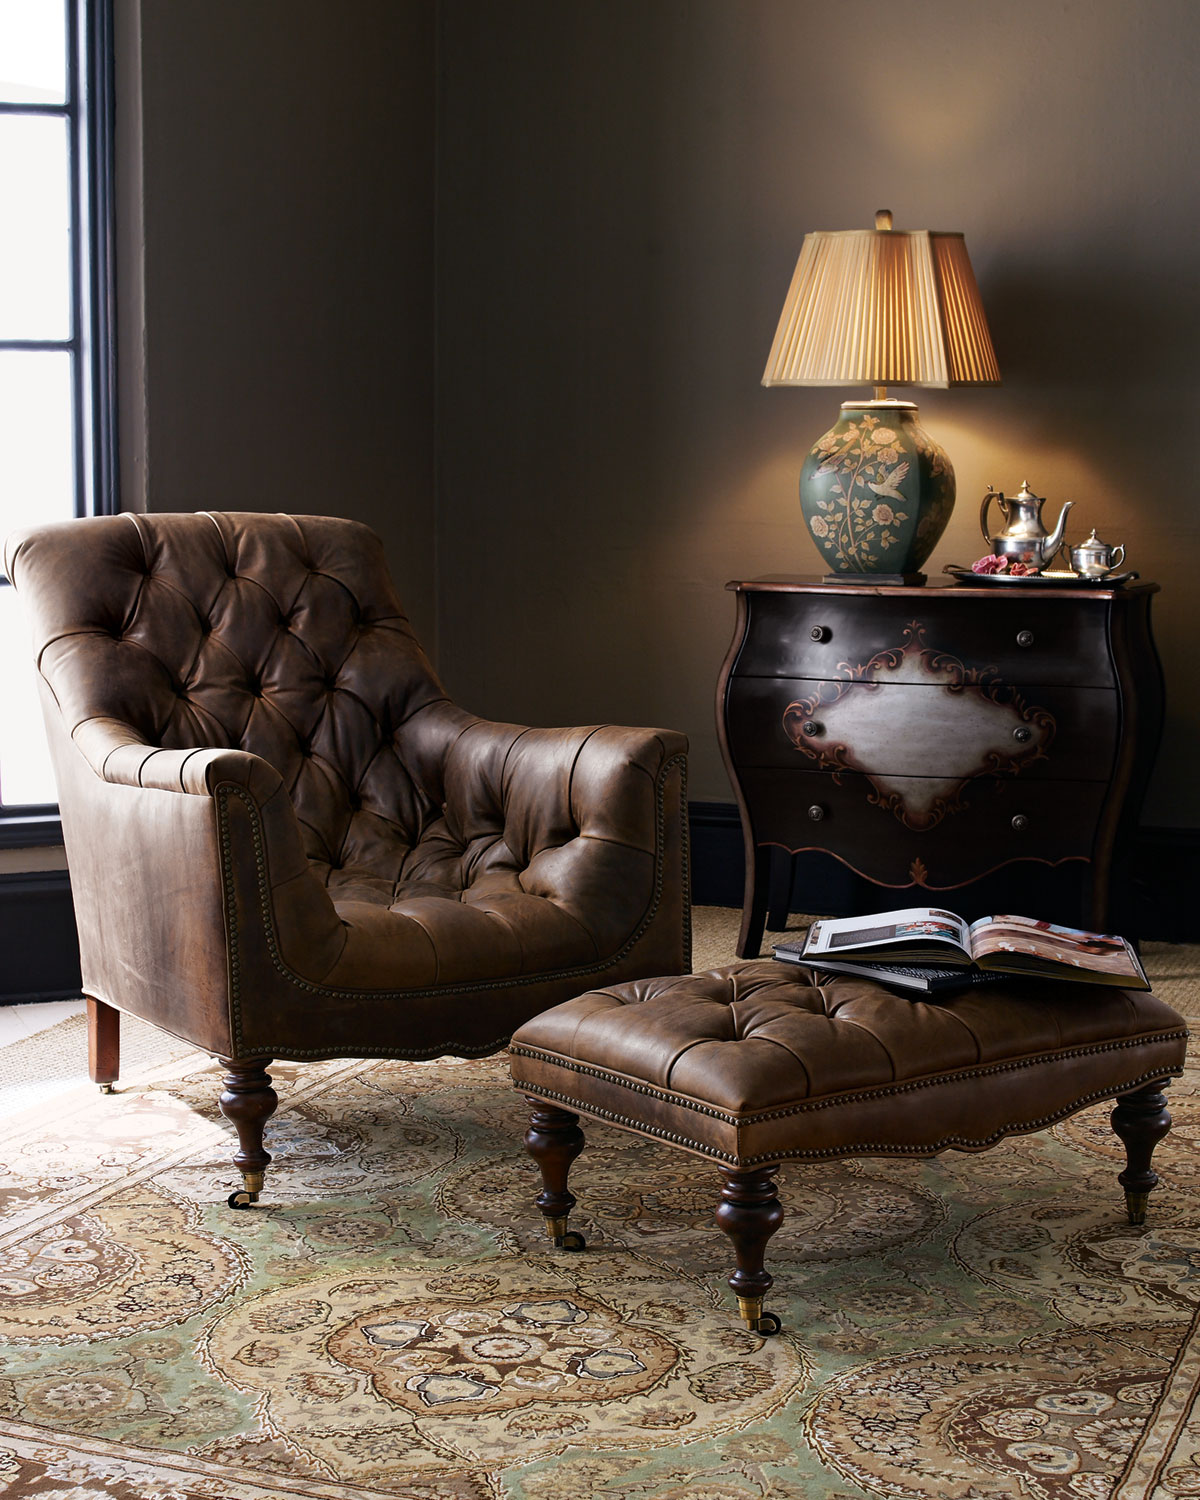 I like to think of myself as a modern-day Sherlock Holmes who happens to solve no mysteries and doesn't actually smoke a pipe. The Horchow Tufted Leather Chair & Ottoman ($1,079) is pretty much everything I'm looking for in a chair. Its bucket-like seat looks insanely comfortable, and the fact that an ottoman comes with it is just an added bonus. — Maggie Pehanick, assistant editor